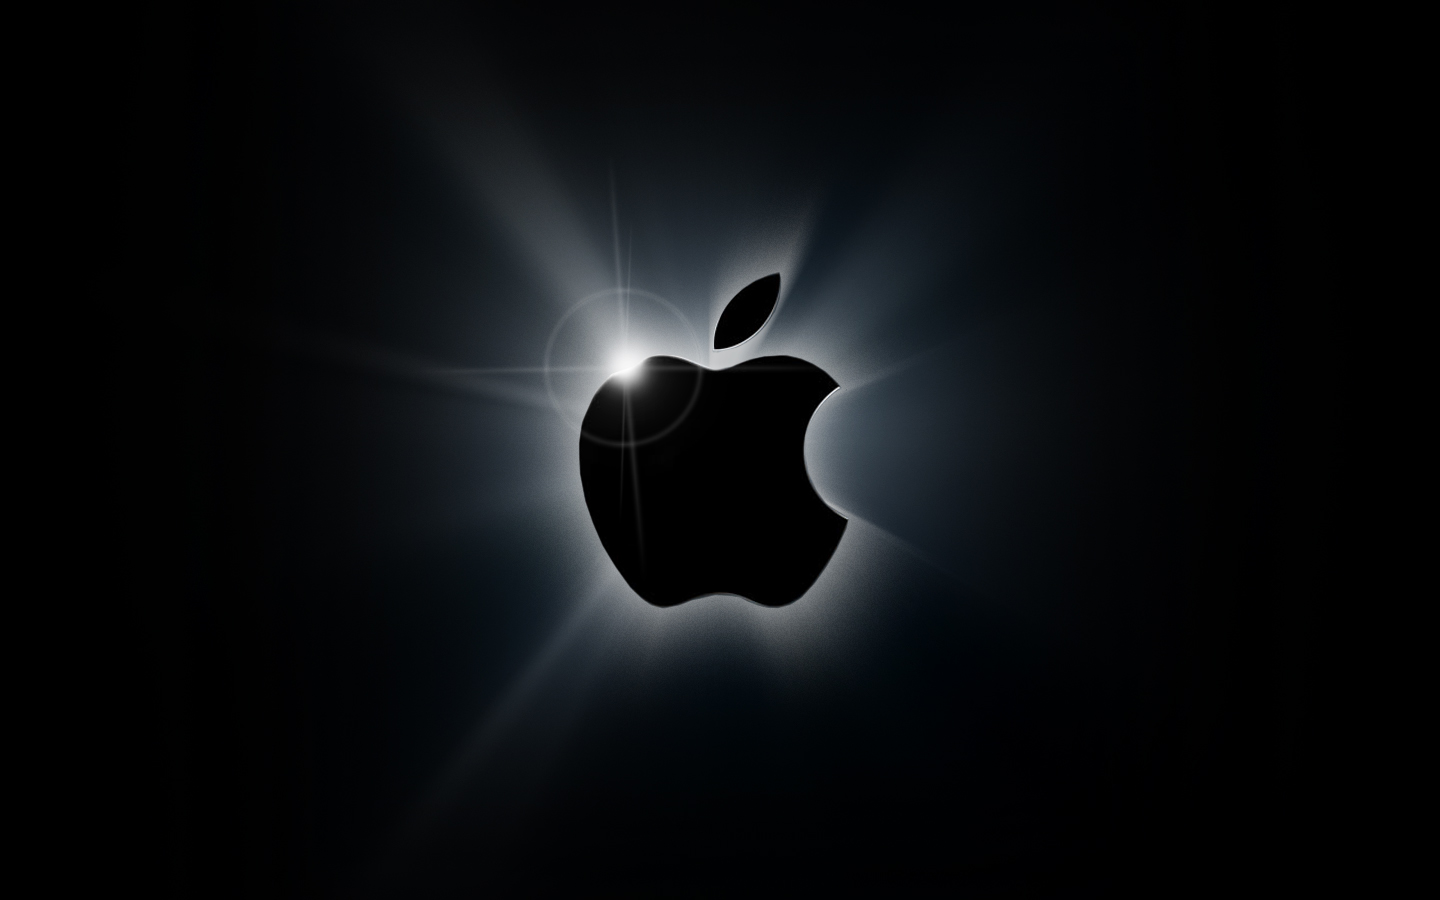 Apple Mac Abstract 3D Wallpapers HD Awesome Wallpapers 1440x900